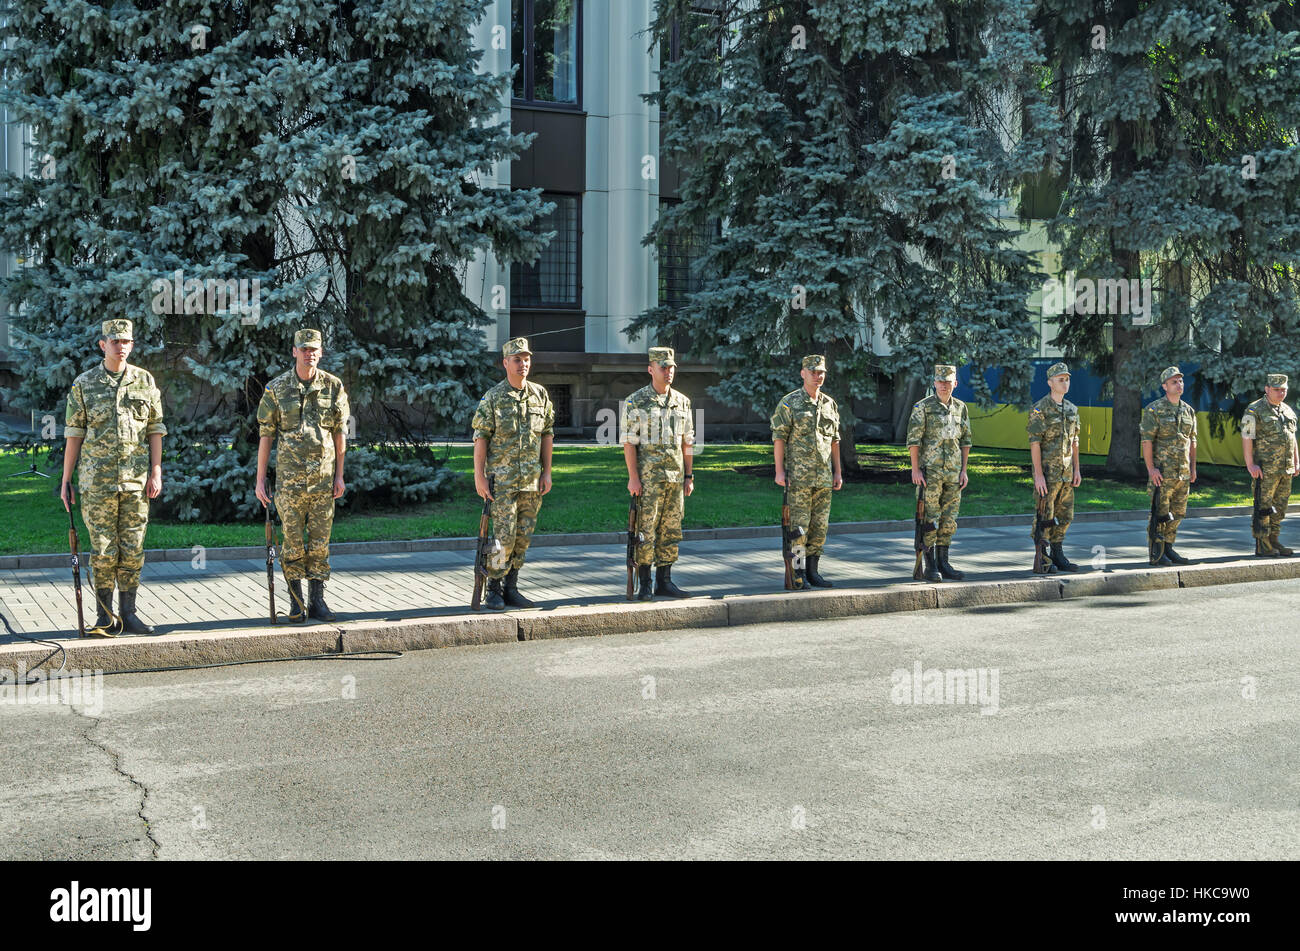 Dnepropetrovsk, Ukraine - August 23, 2015: Guard of honor during the celebration of the state flag of Ukraine - Stock Image